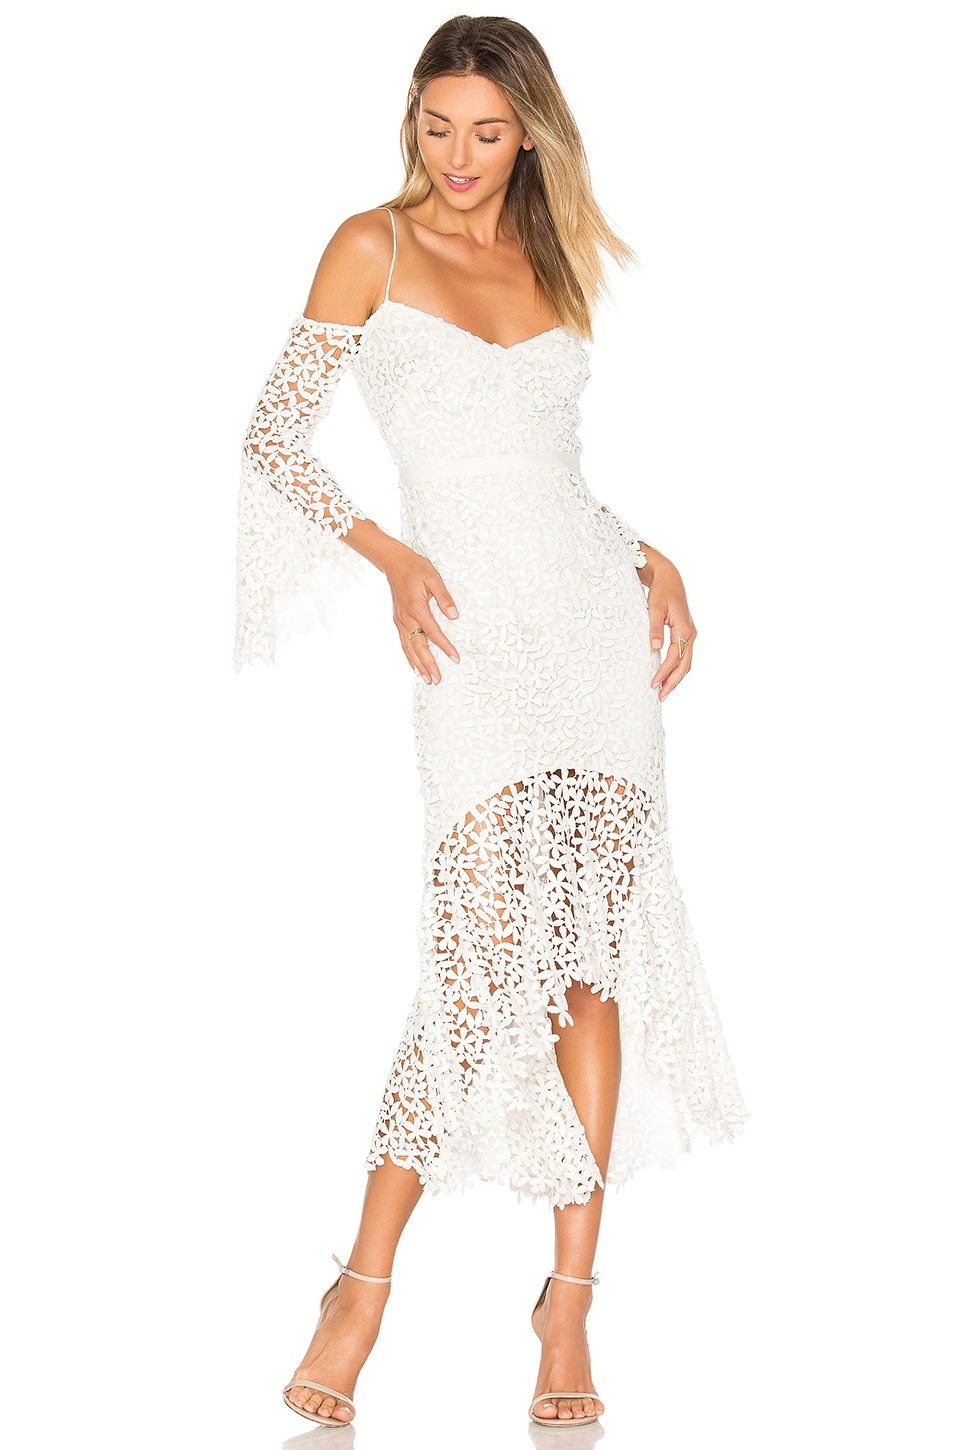 AMUR Amanda Dress in White